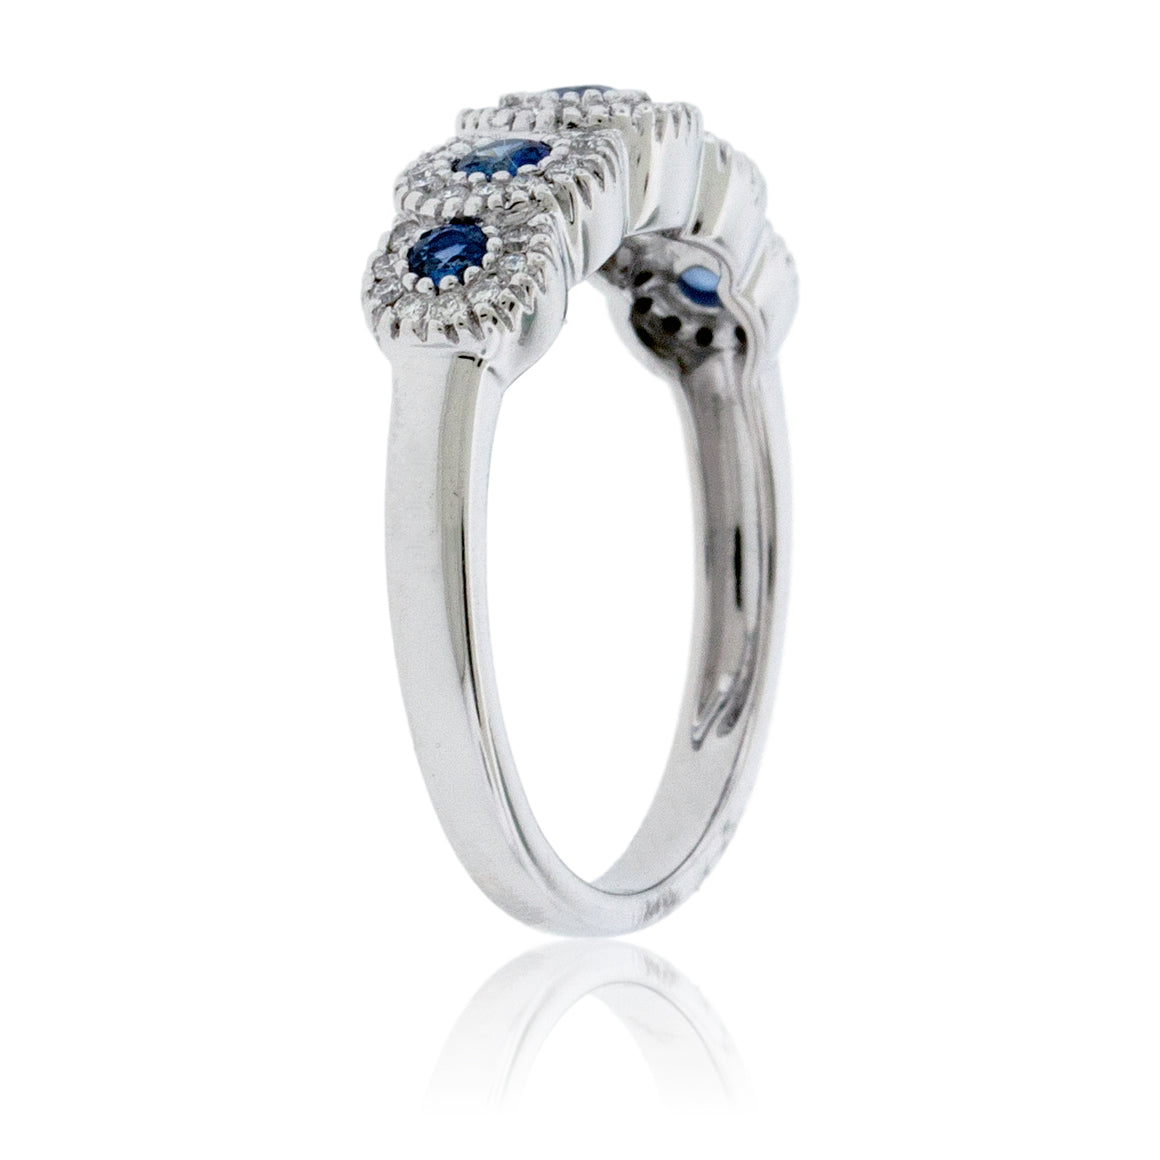 5 Round Blue Sapphire with Diamond Accent Ring